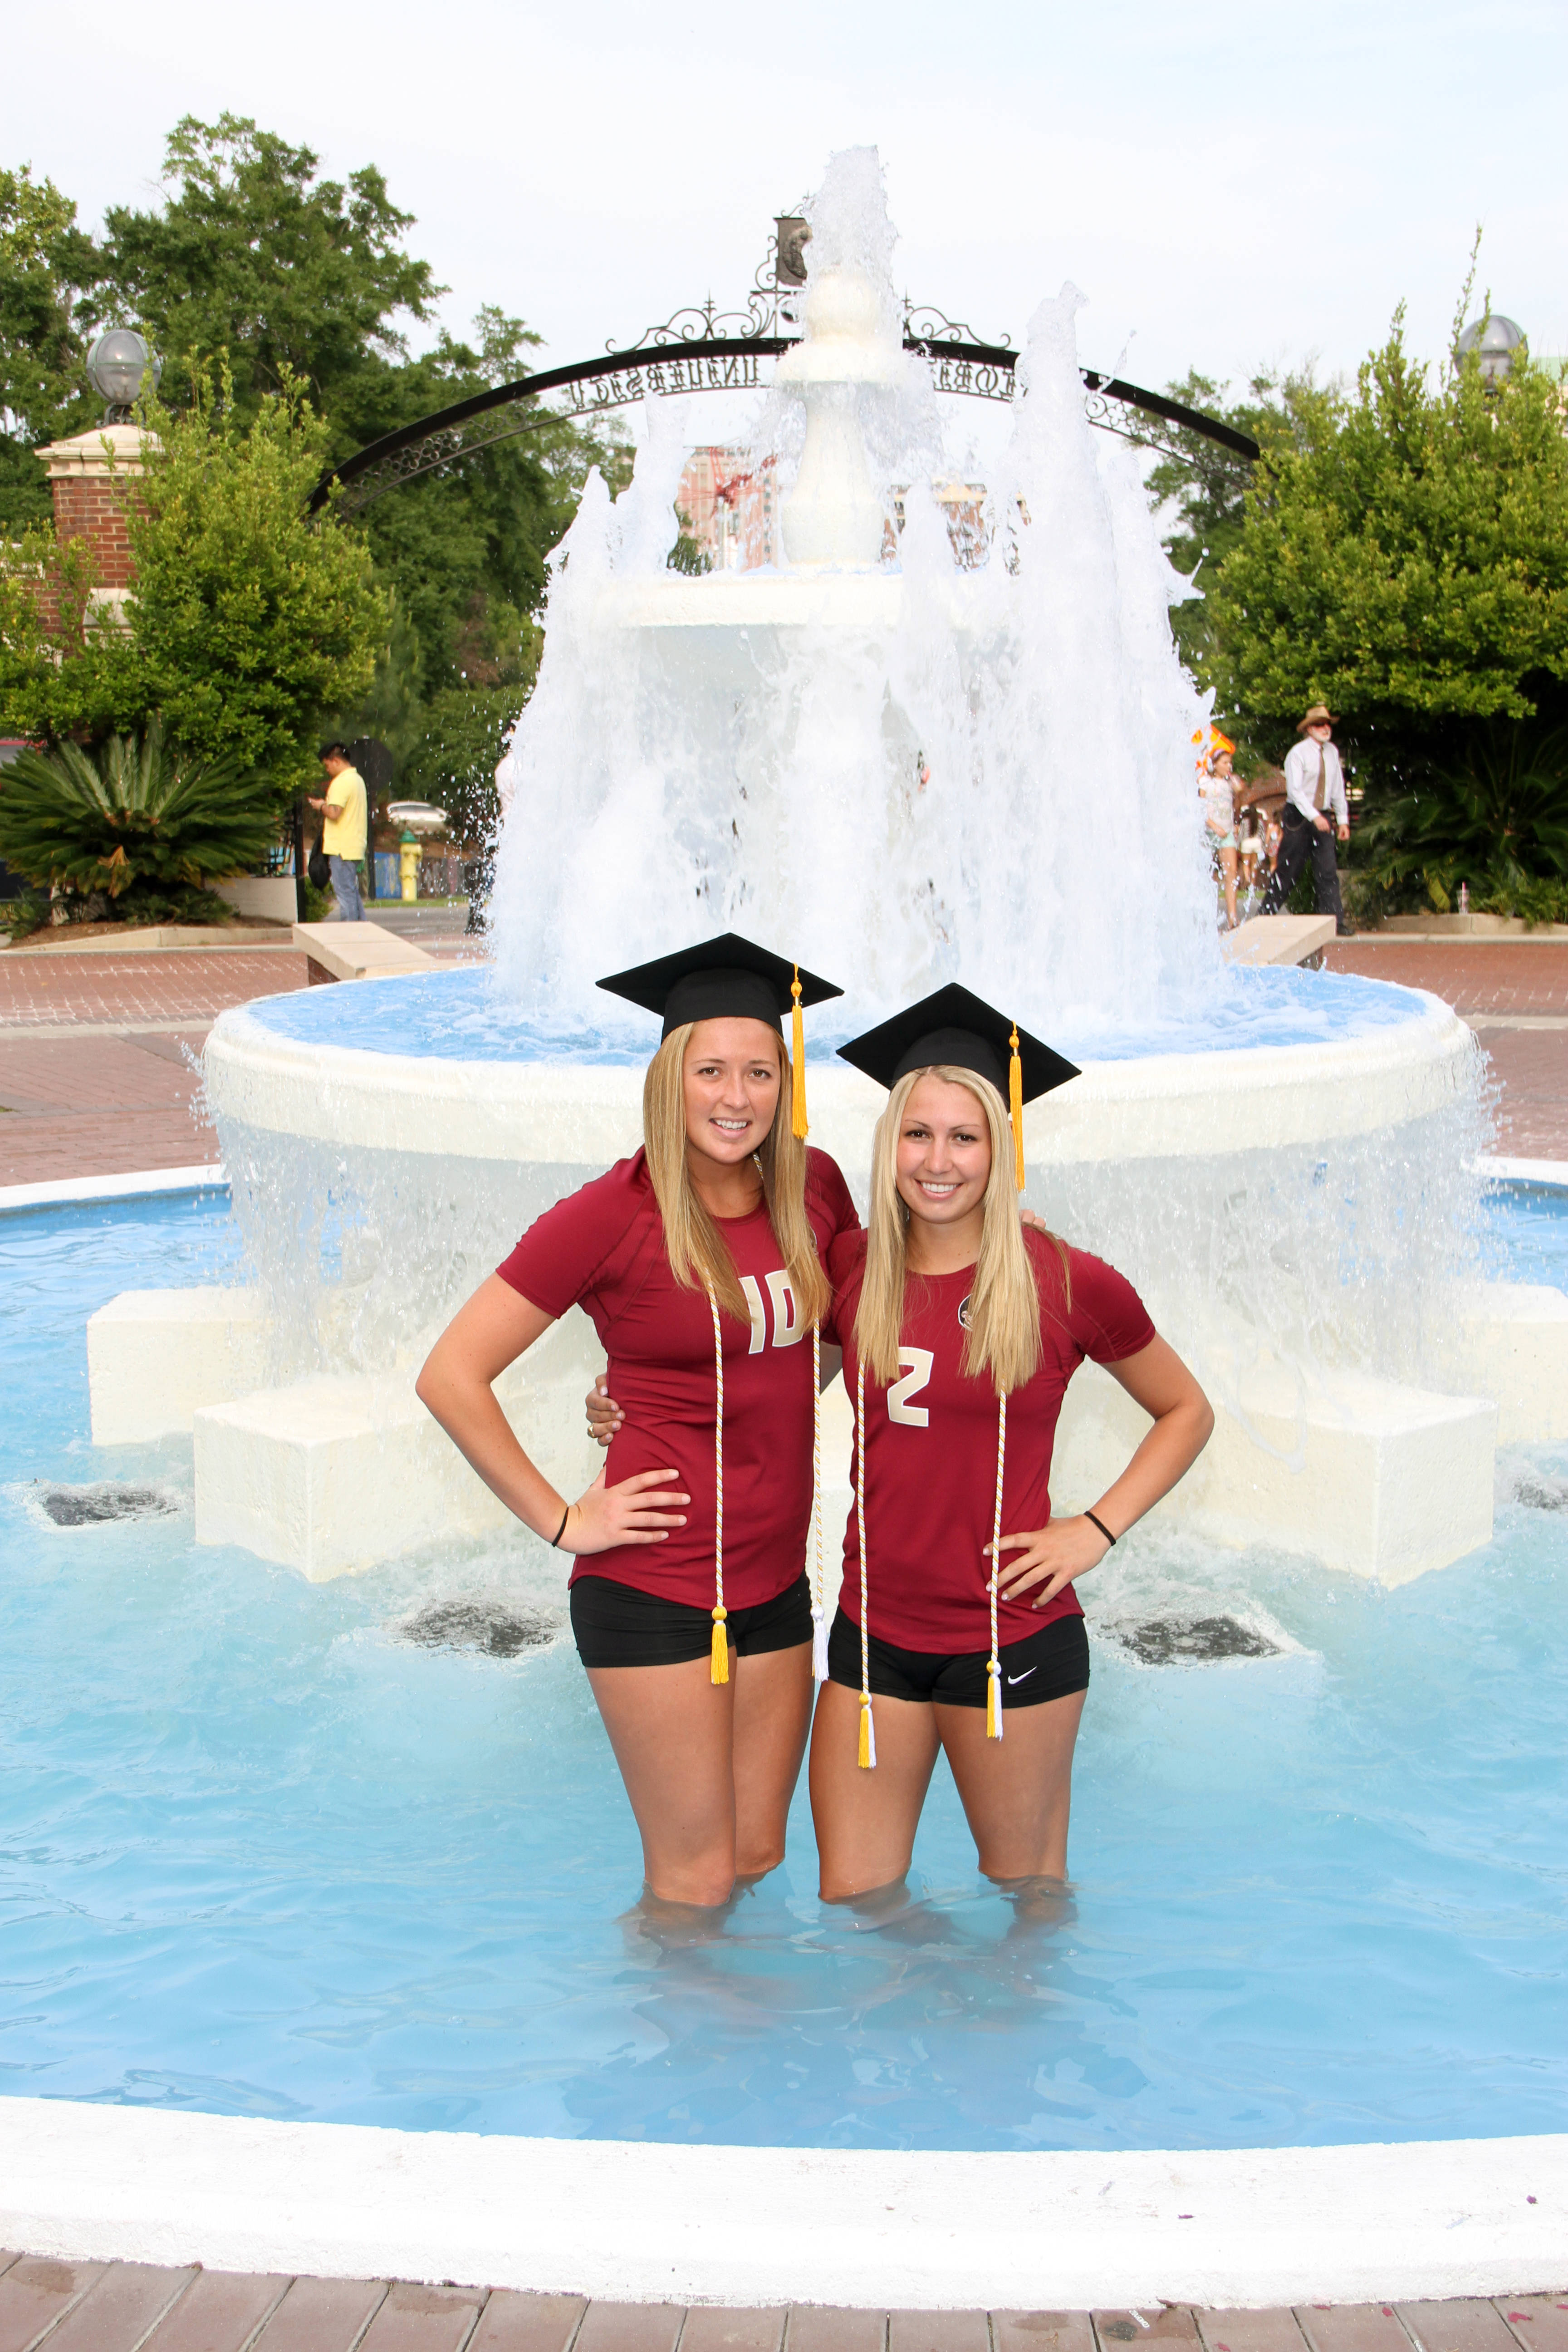 And of course a snap taken in the fountain!